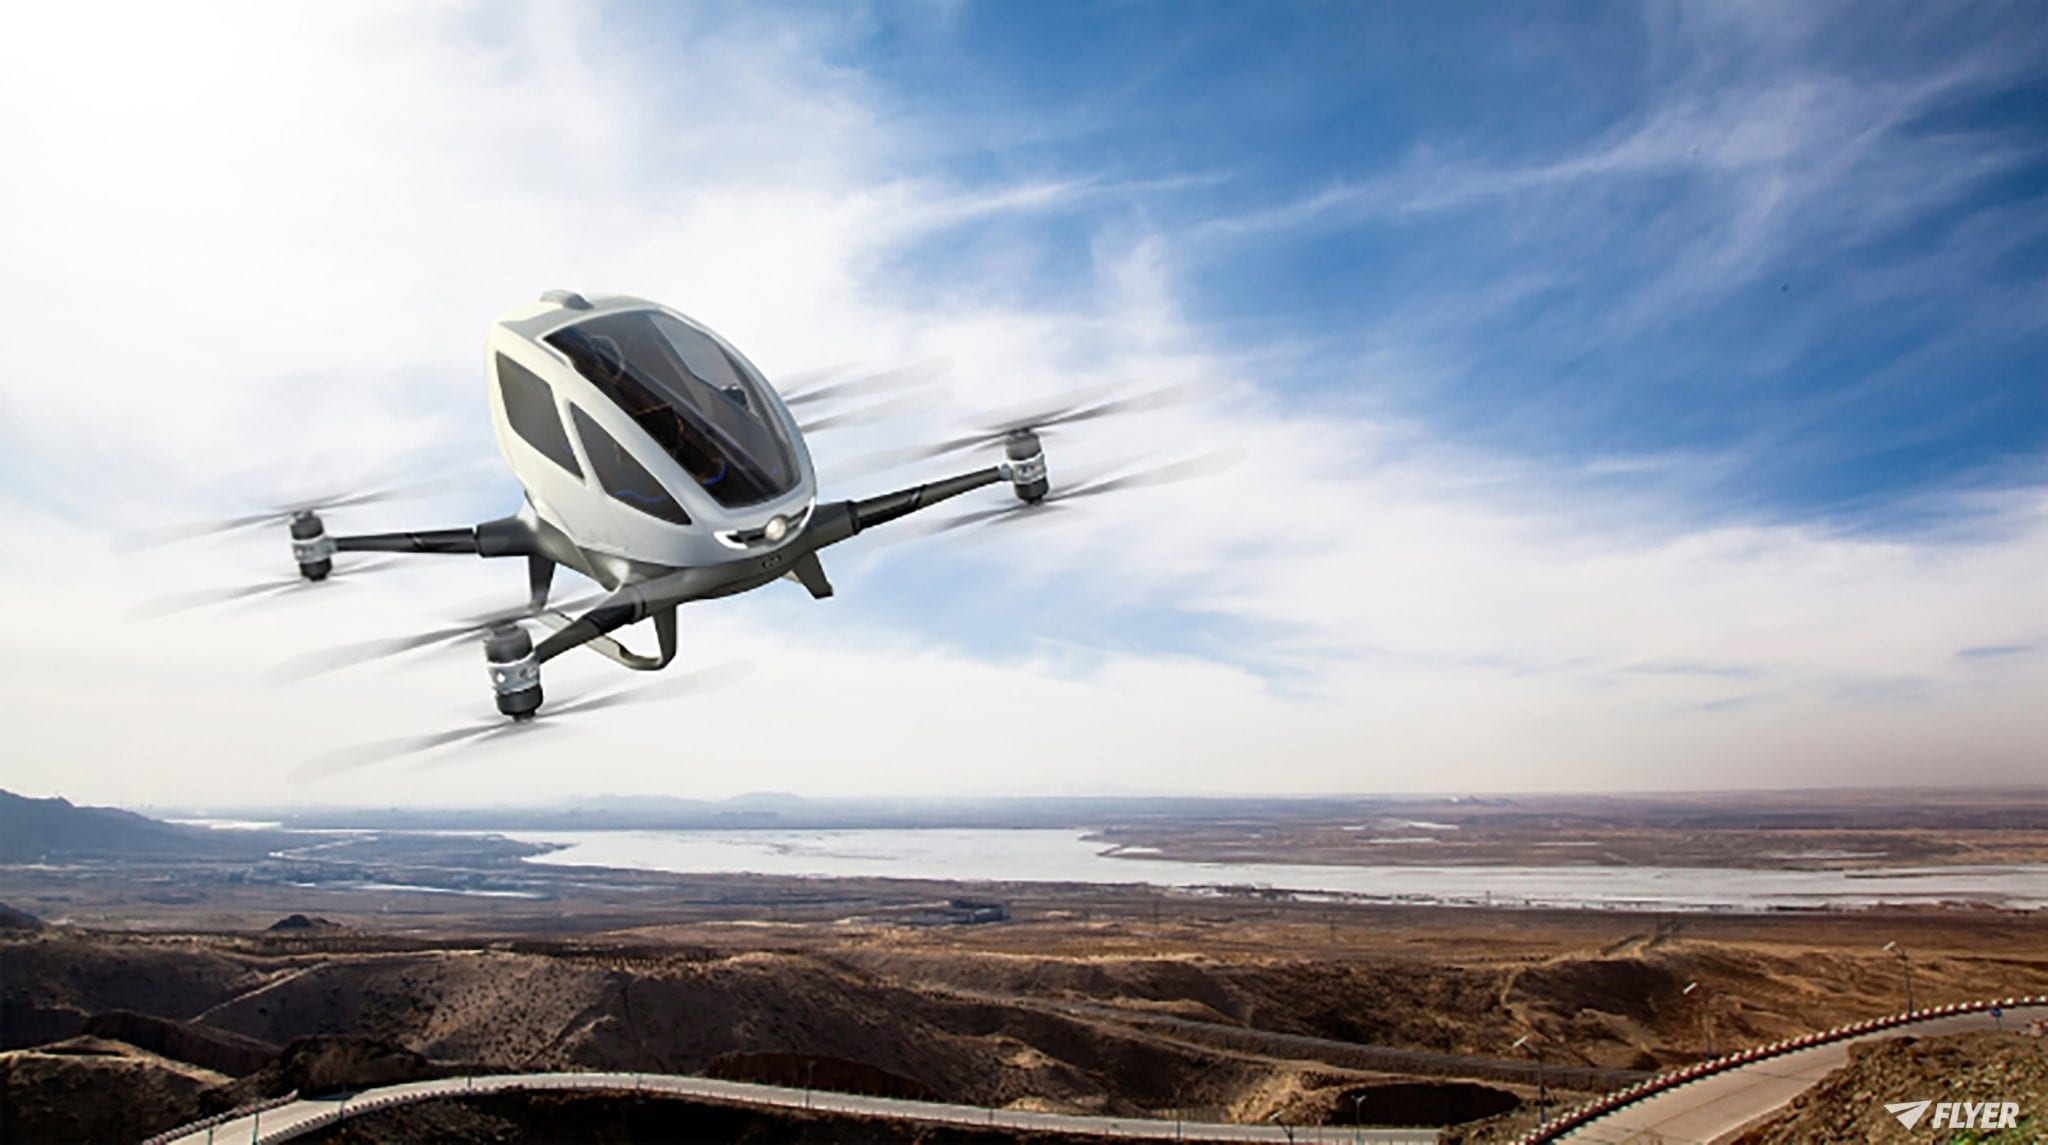 This autonomous drone which carries one person has been given the go ahead for trials.